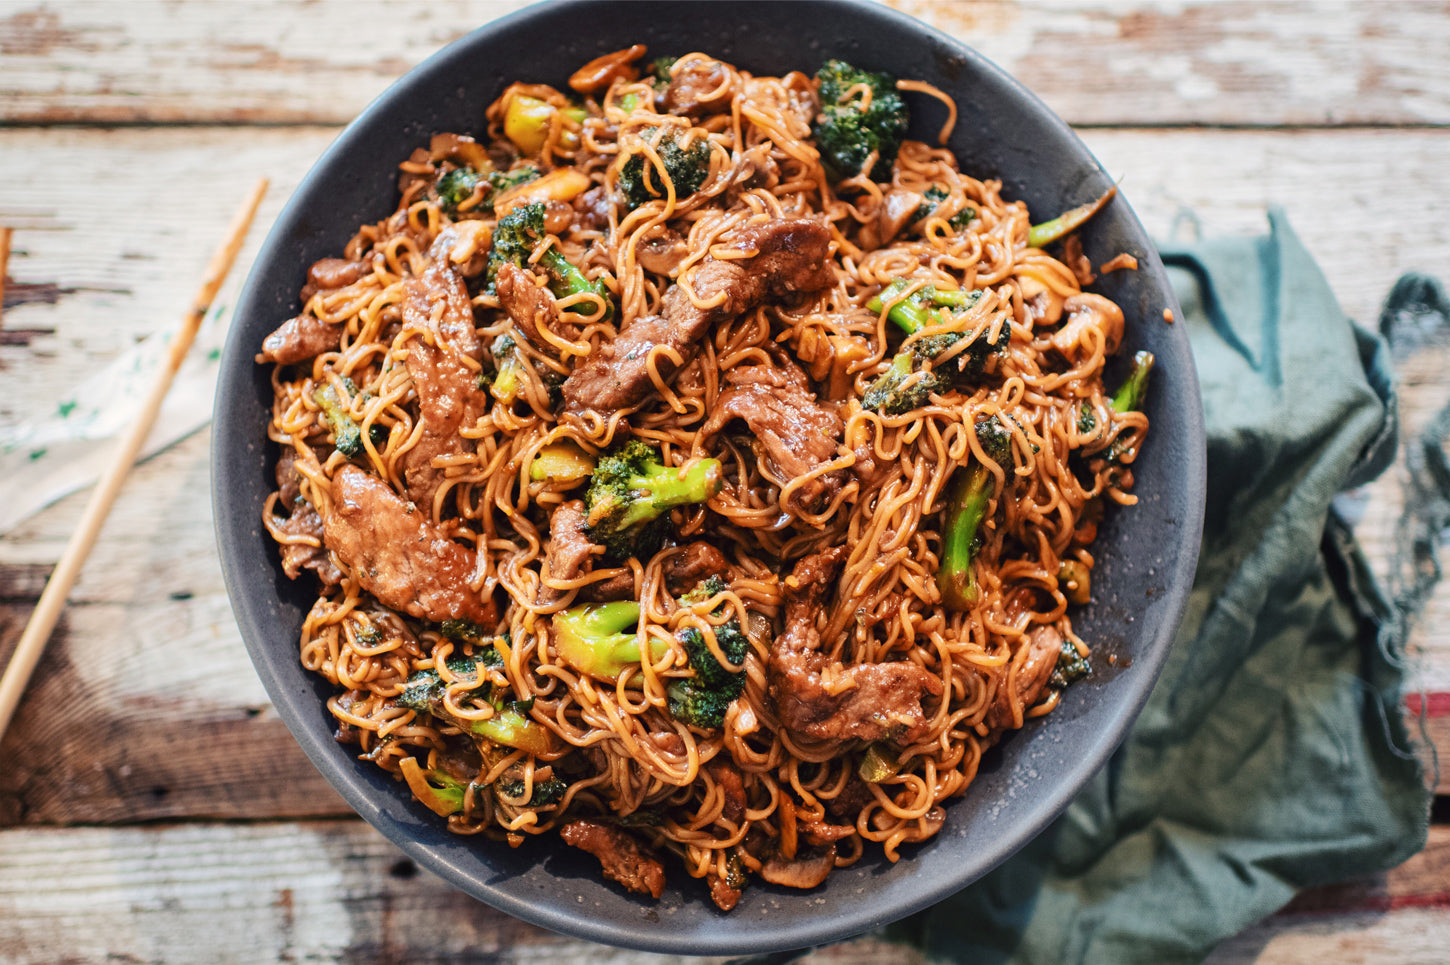 noodles with beef and broccoli